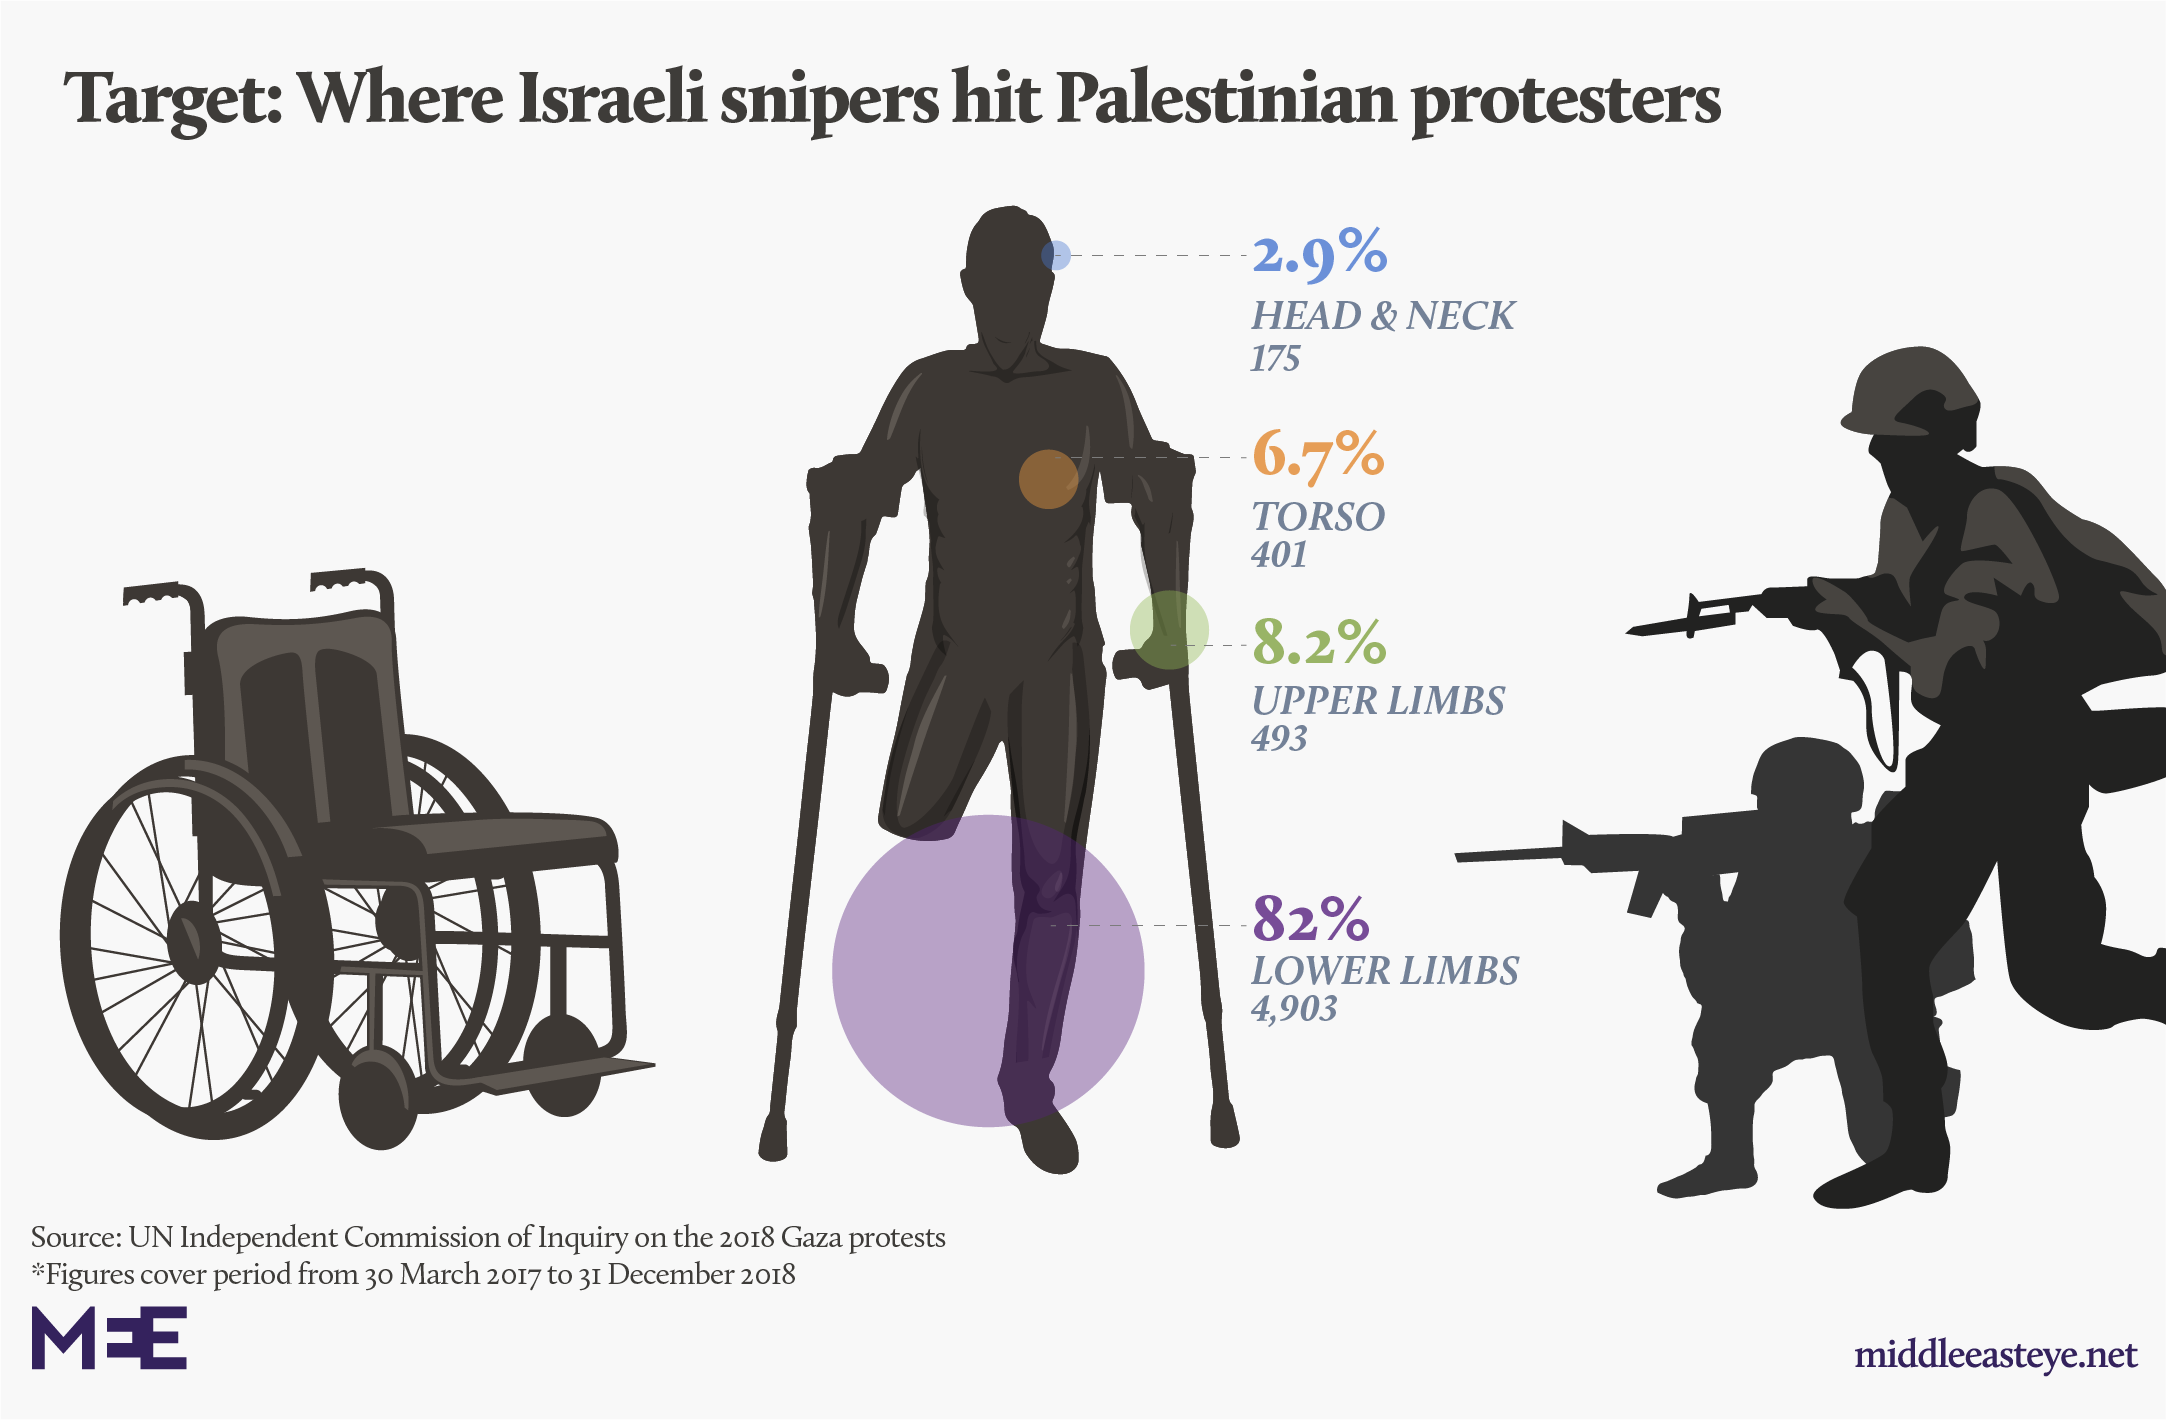 UN report concluded that Israeli soldiers intentionally targeted lower limbs of Palestinian protestors (MEE Graphics)